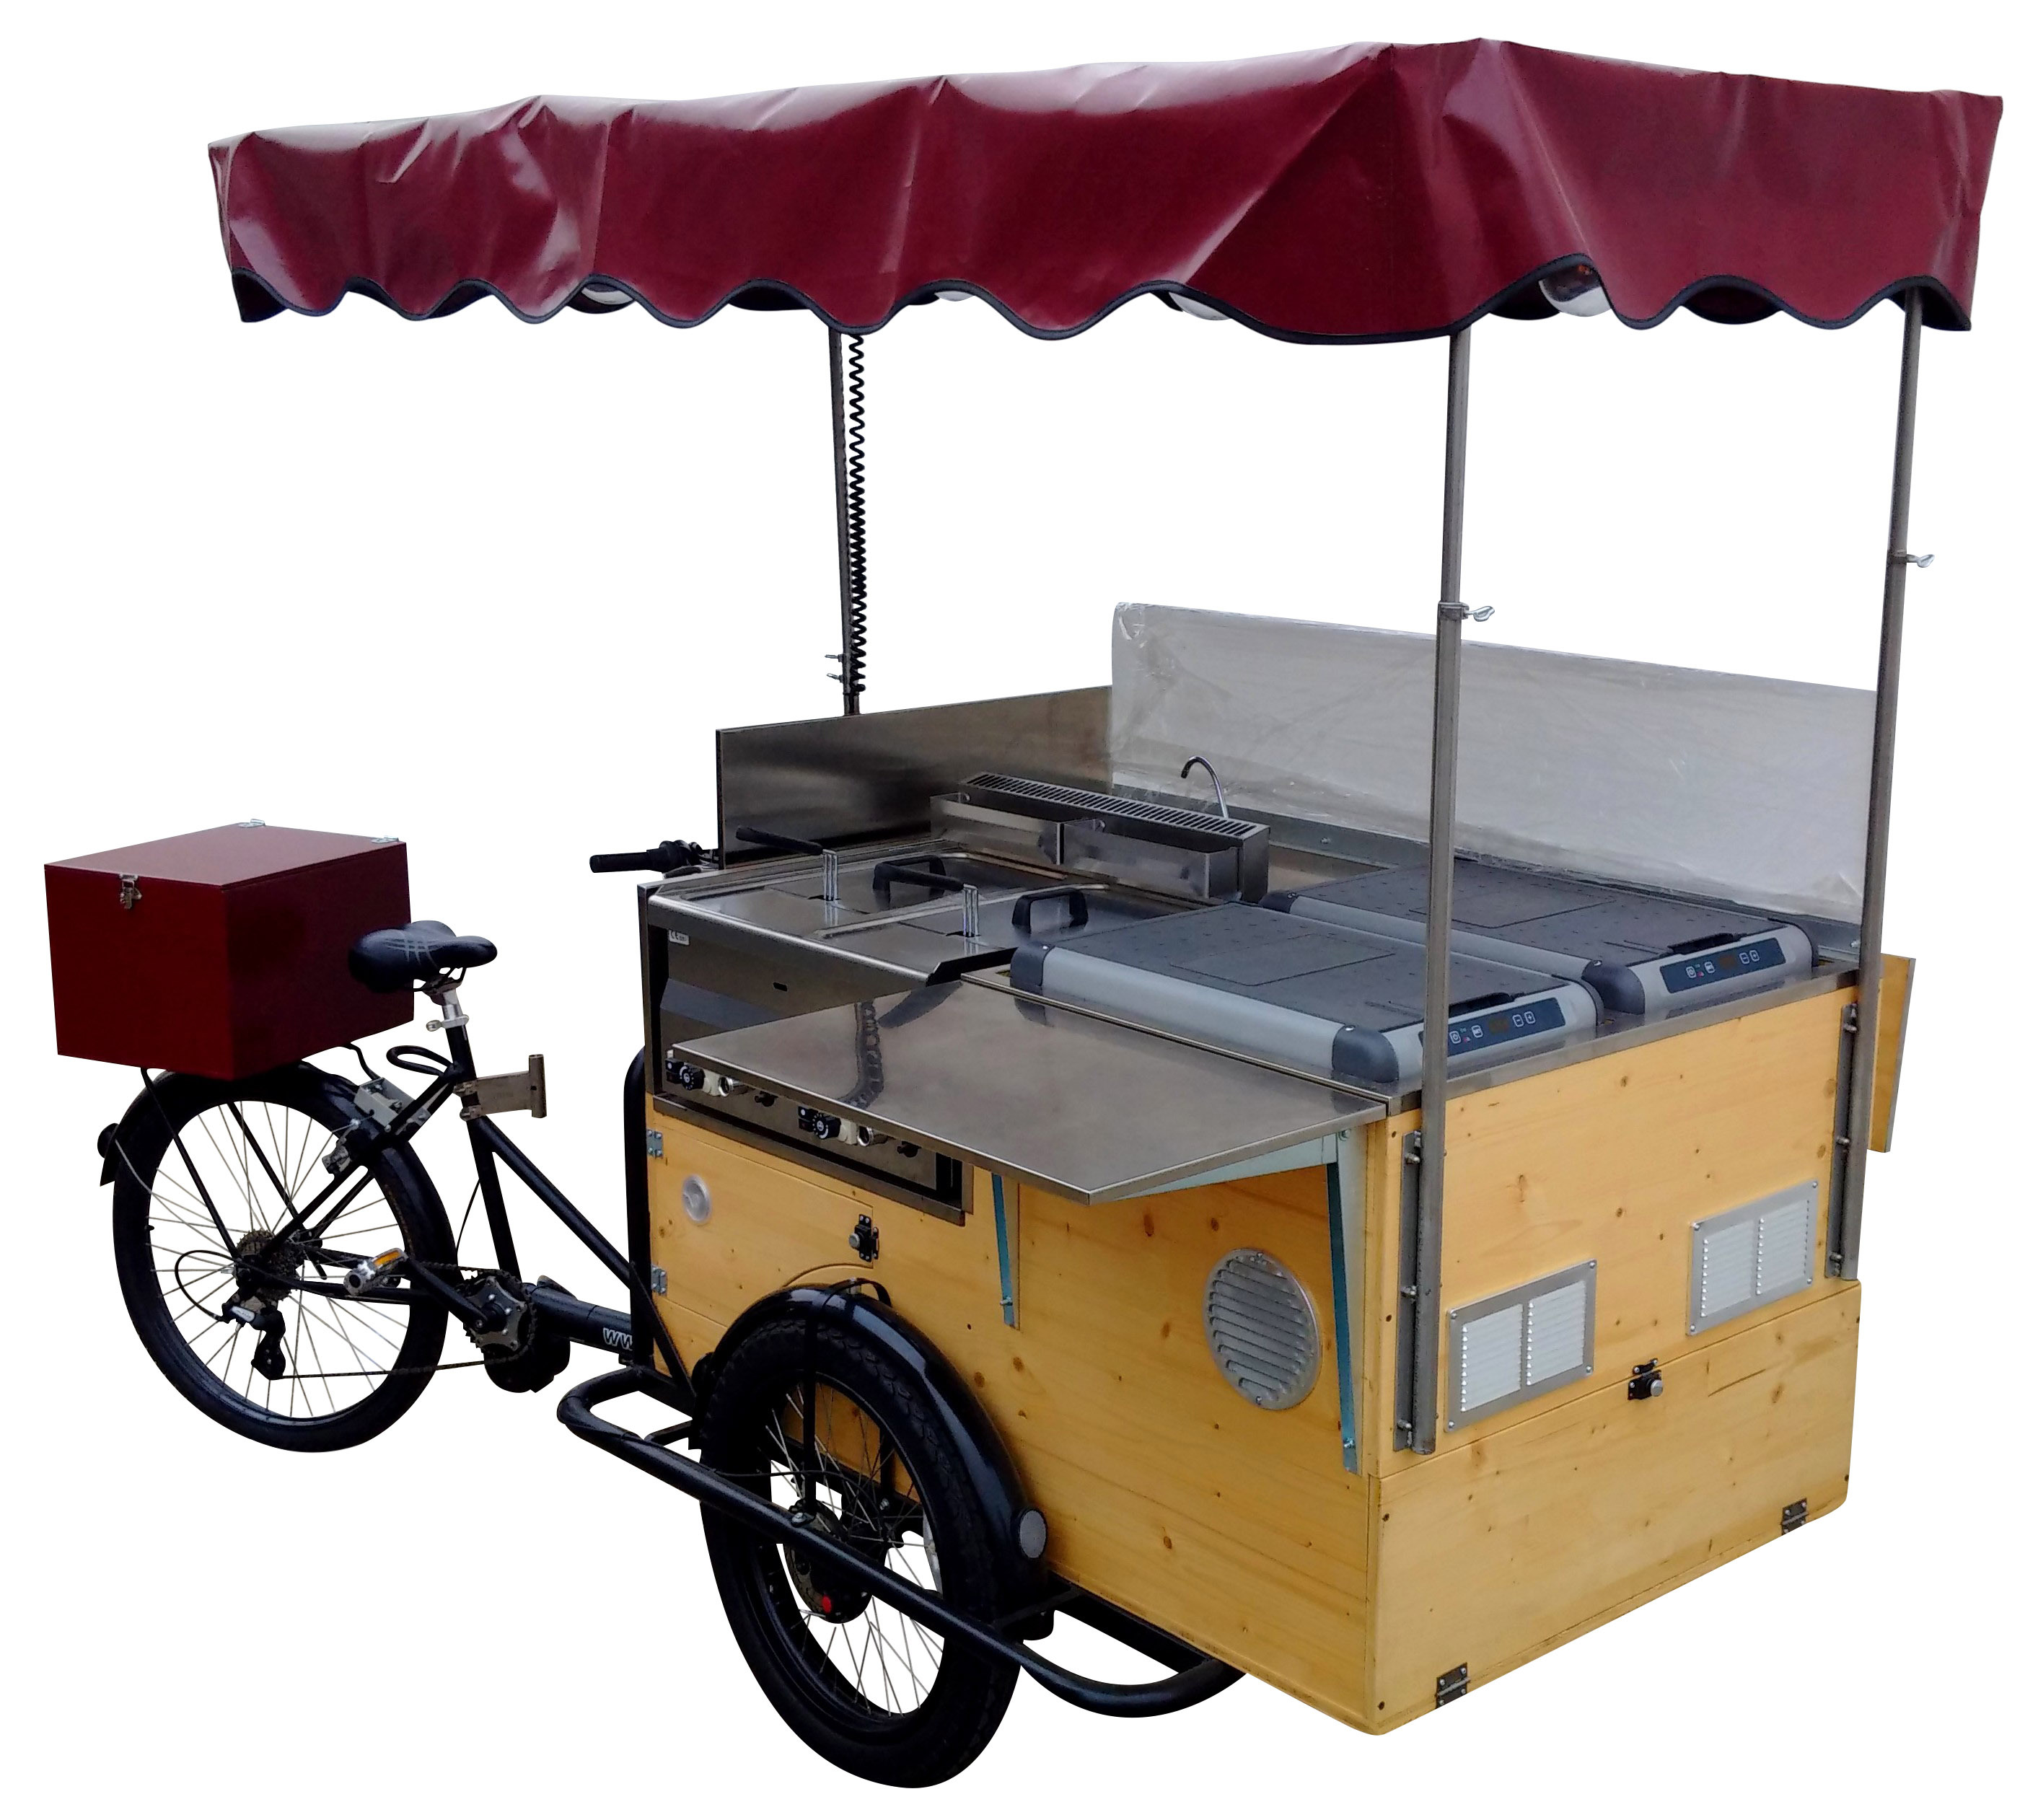 STREET_FOOD_BIKE_QUADRA_FRIGGITRICE_IN_LEGNO_TRICICLO_CARGO_BIKE_9